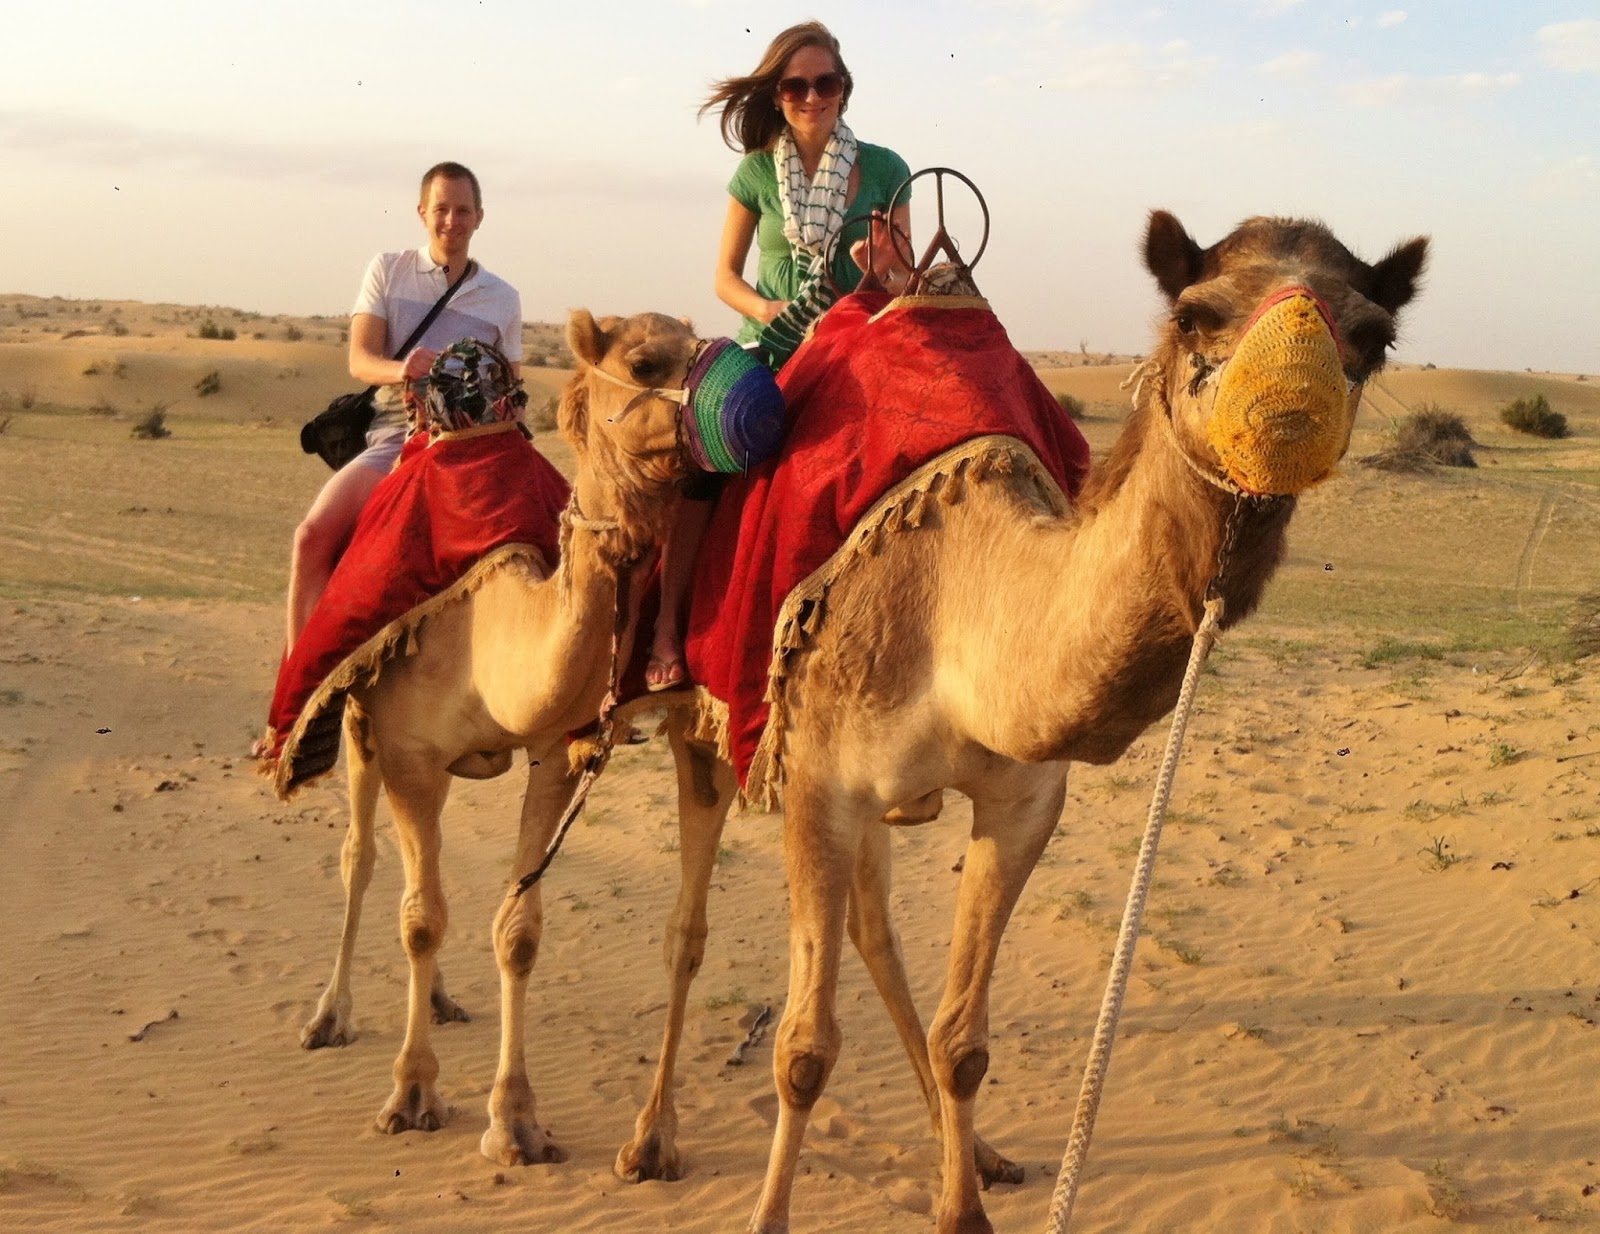 CAMEL SAFARI 2 - Best Tip For Enjoying The Desert Safari Tour